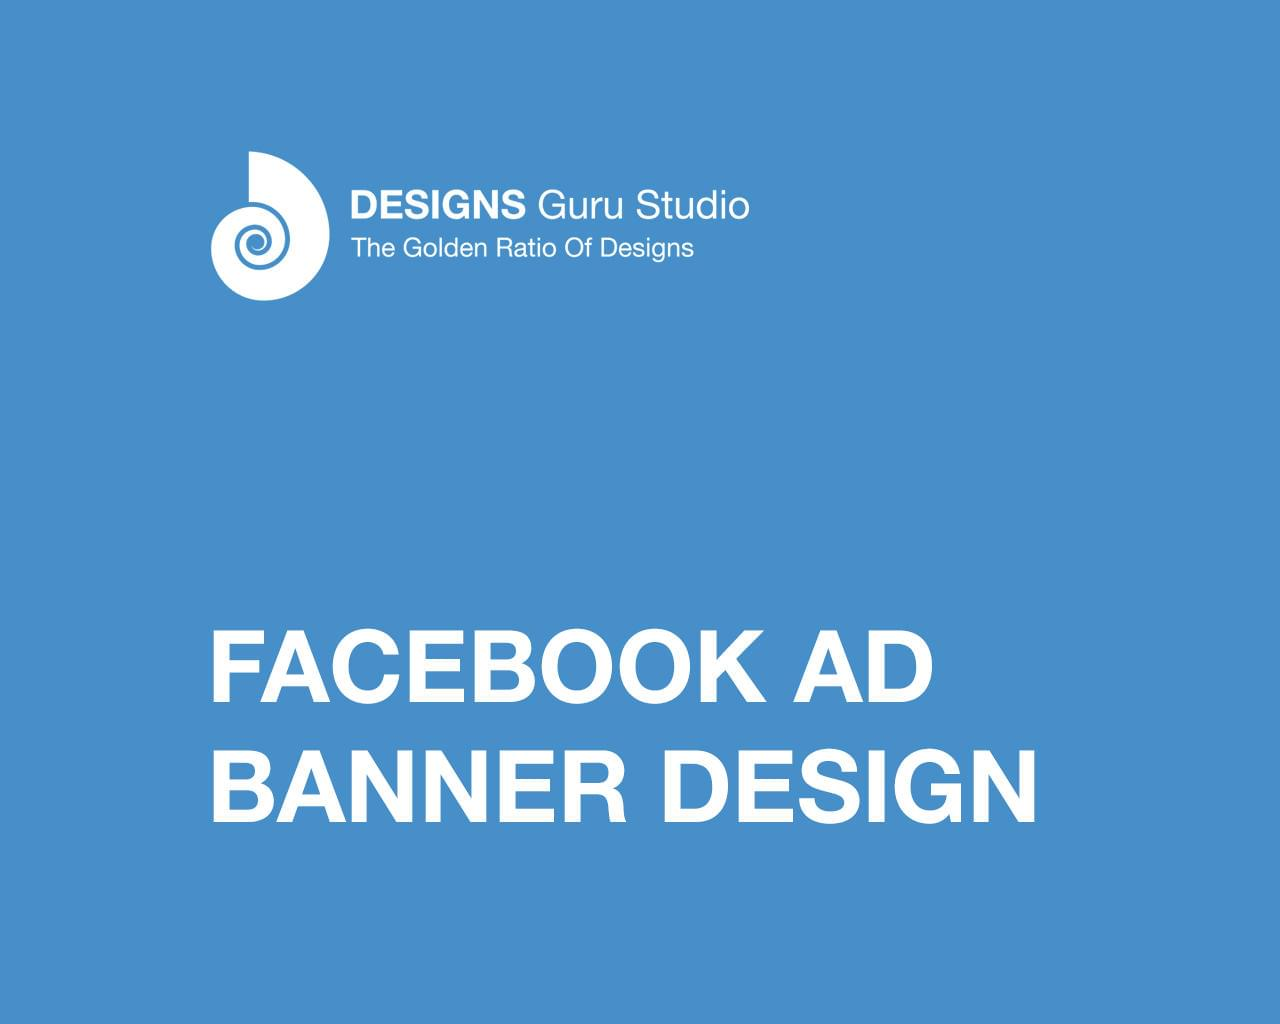 Facebook Ad Banner Design by designsgurustudio - 111487